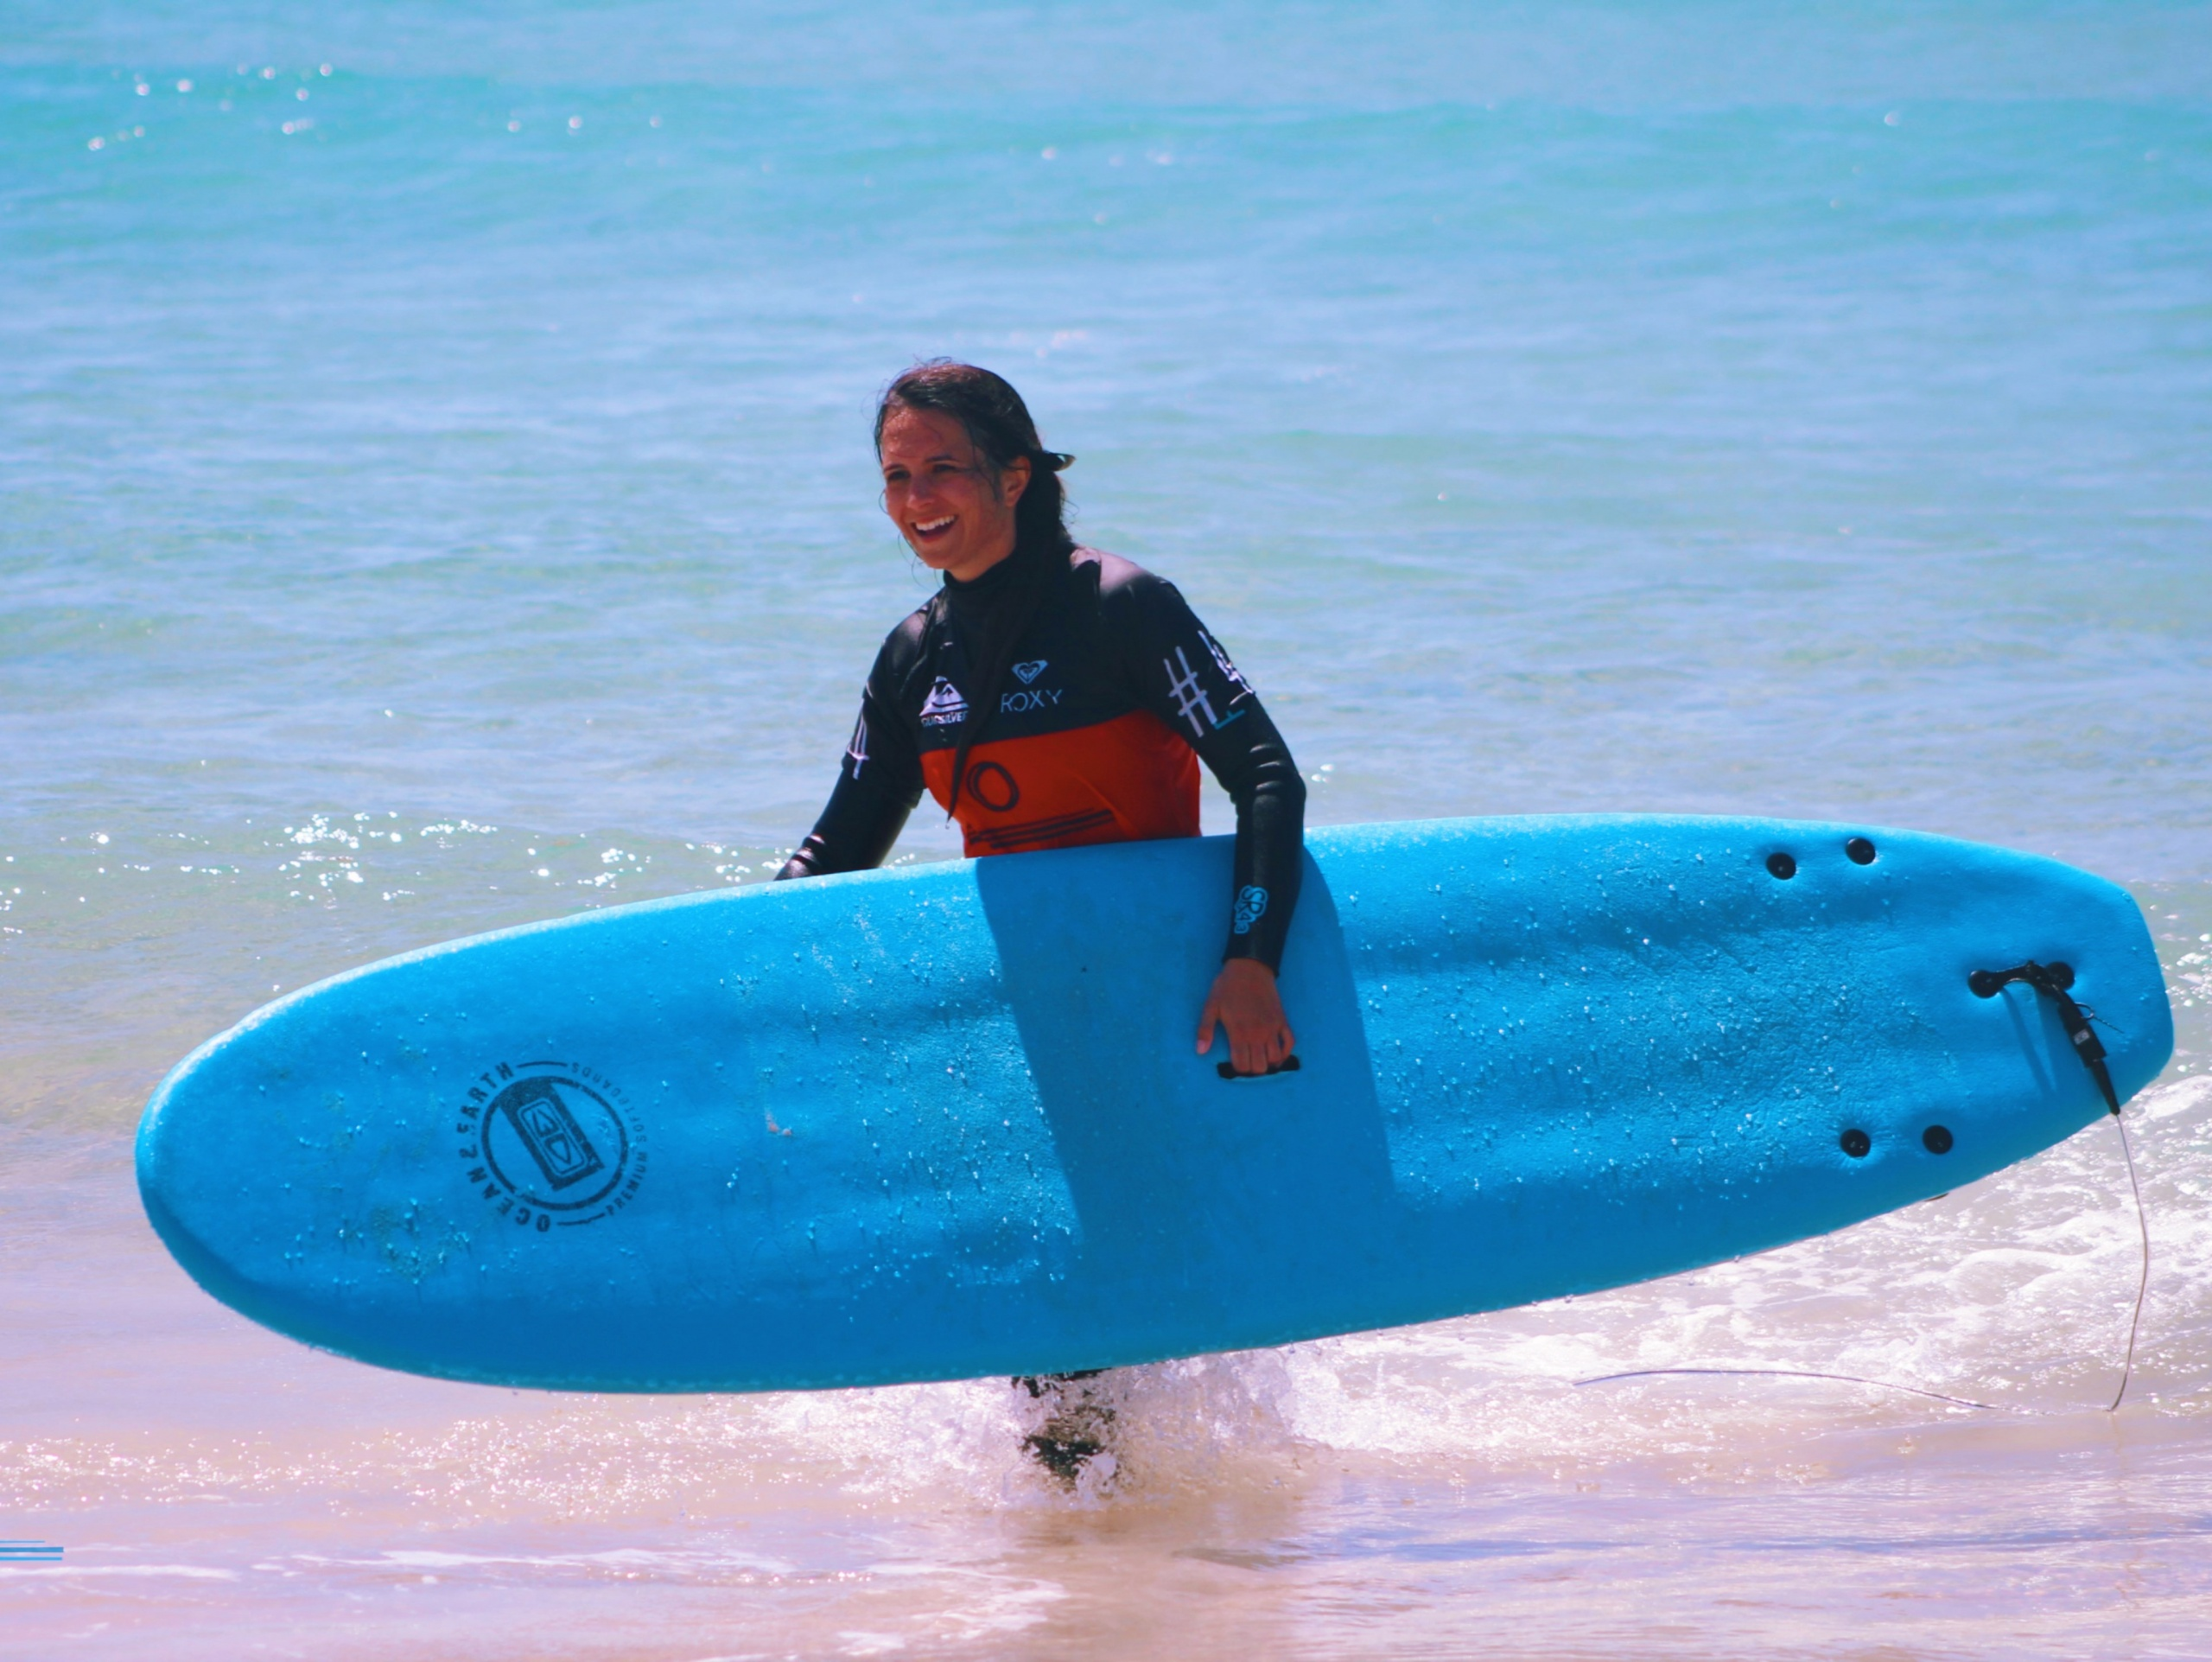 Surfer girl walking with a board